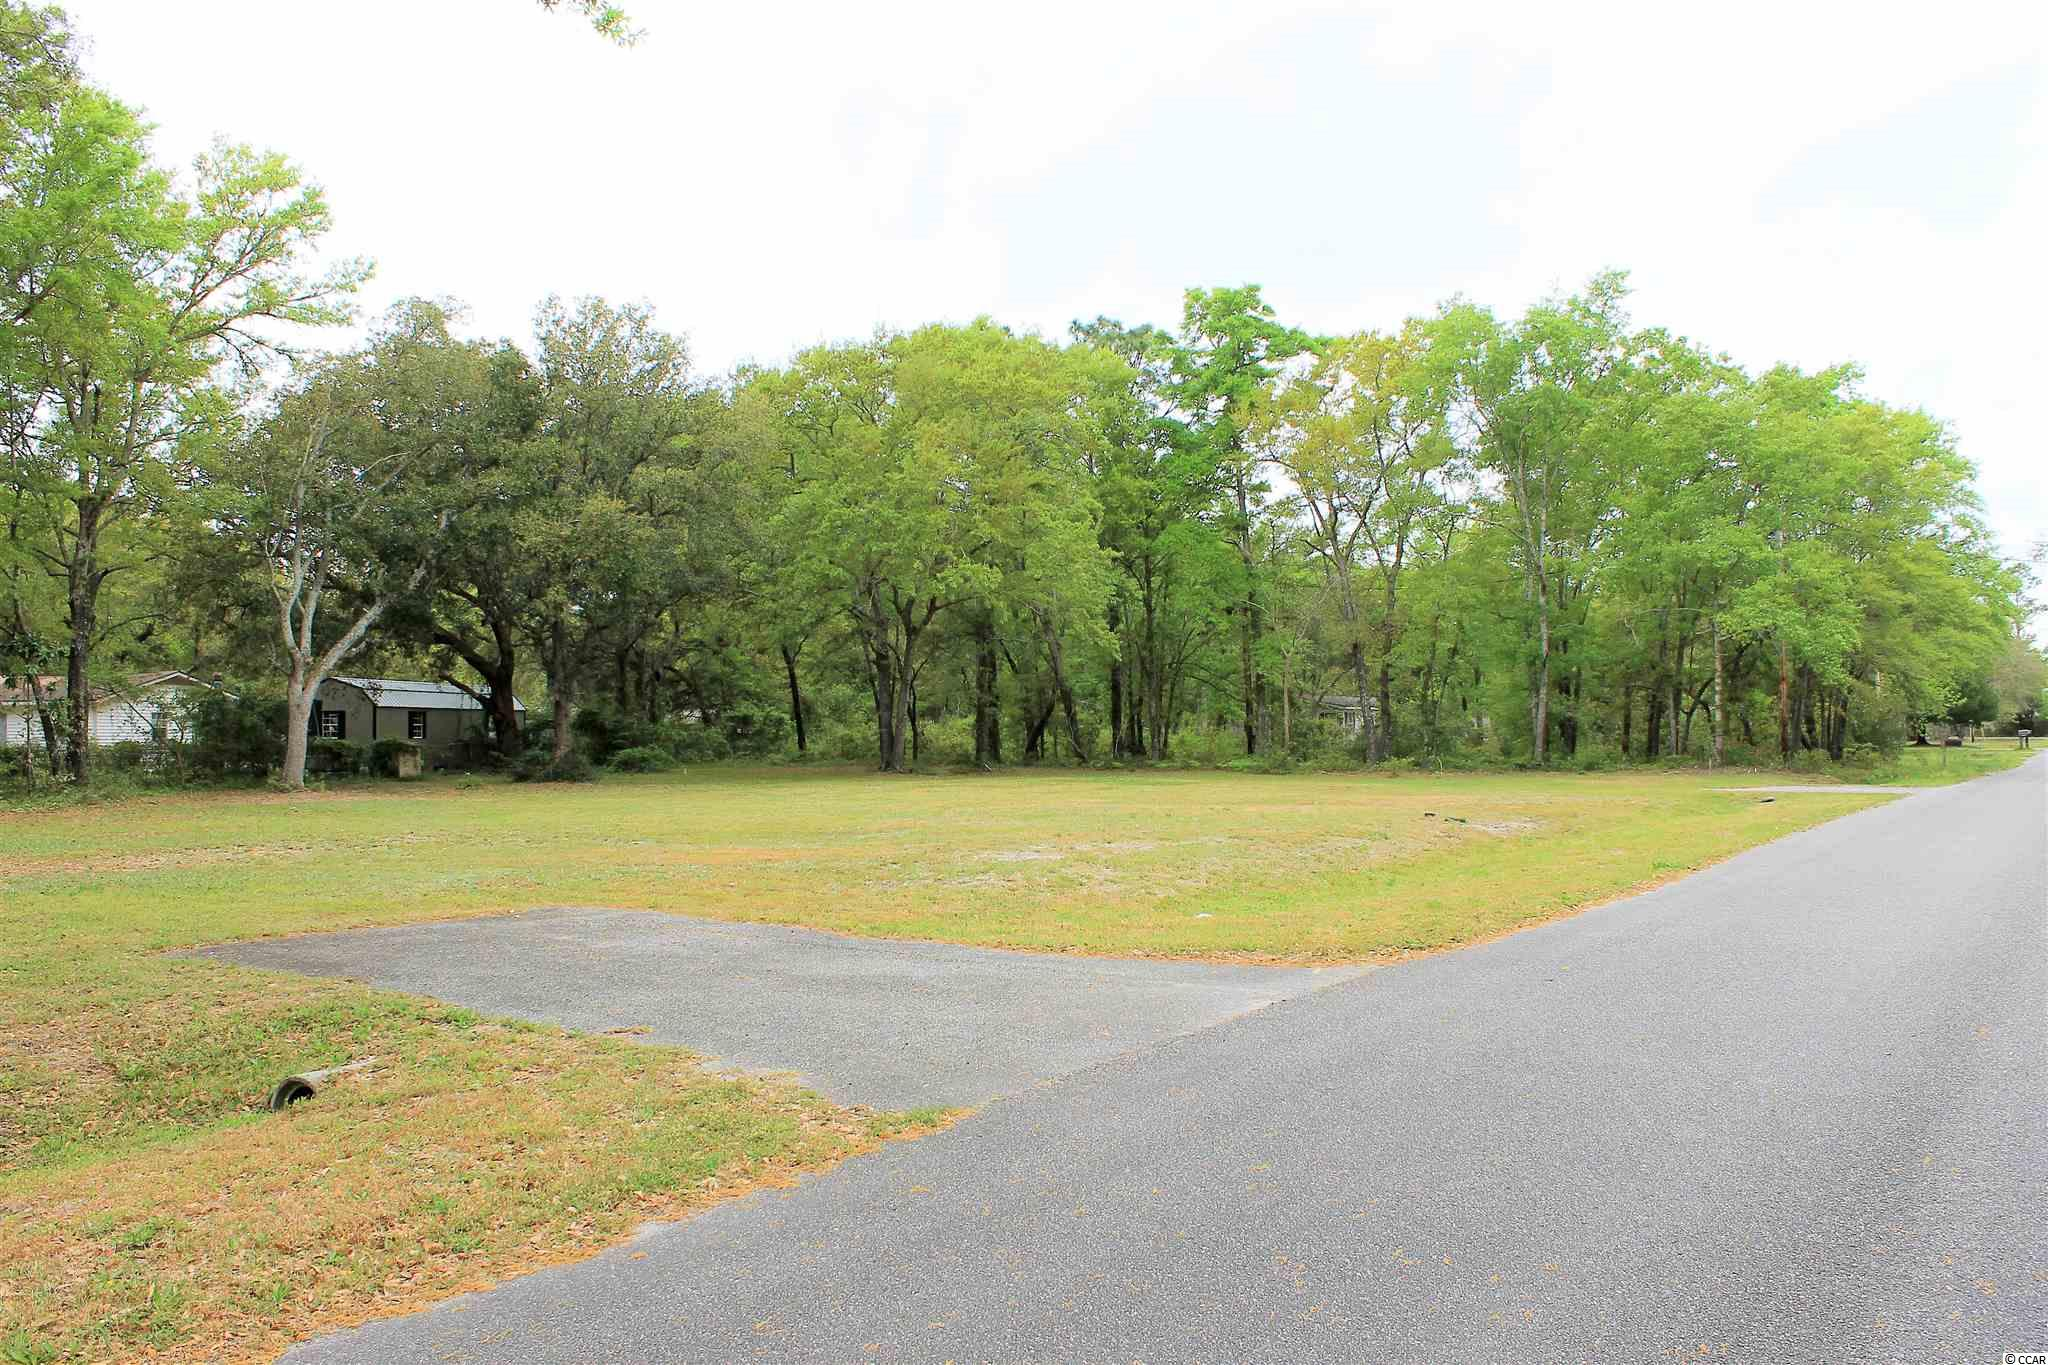 You do not want to miss out on this beautiful half acre of land! This is one of the last lots available in the Oak Hill Subdivision in Murrells Inlet, and it wont last long! This parcel has been completely cleared and is ready for building. This highly desired area is zoned for manufactured or Residential homes. Just a few minutes from the famous Marsh Walk. This is a subdivision with NO HOA, drive over and take a look today!